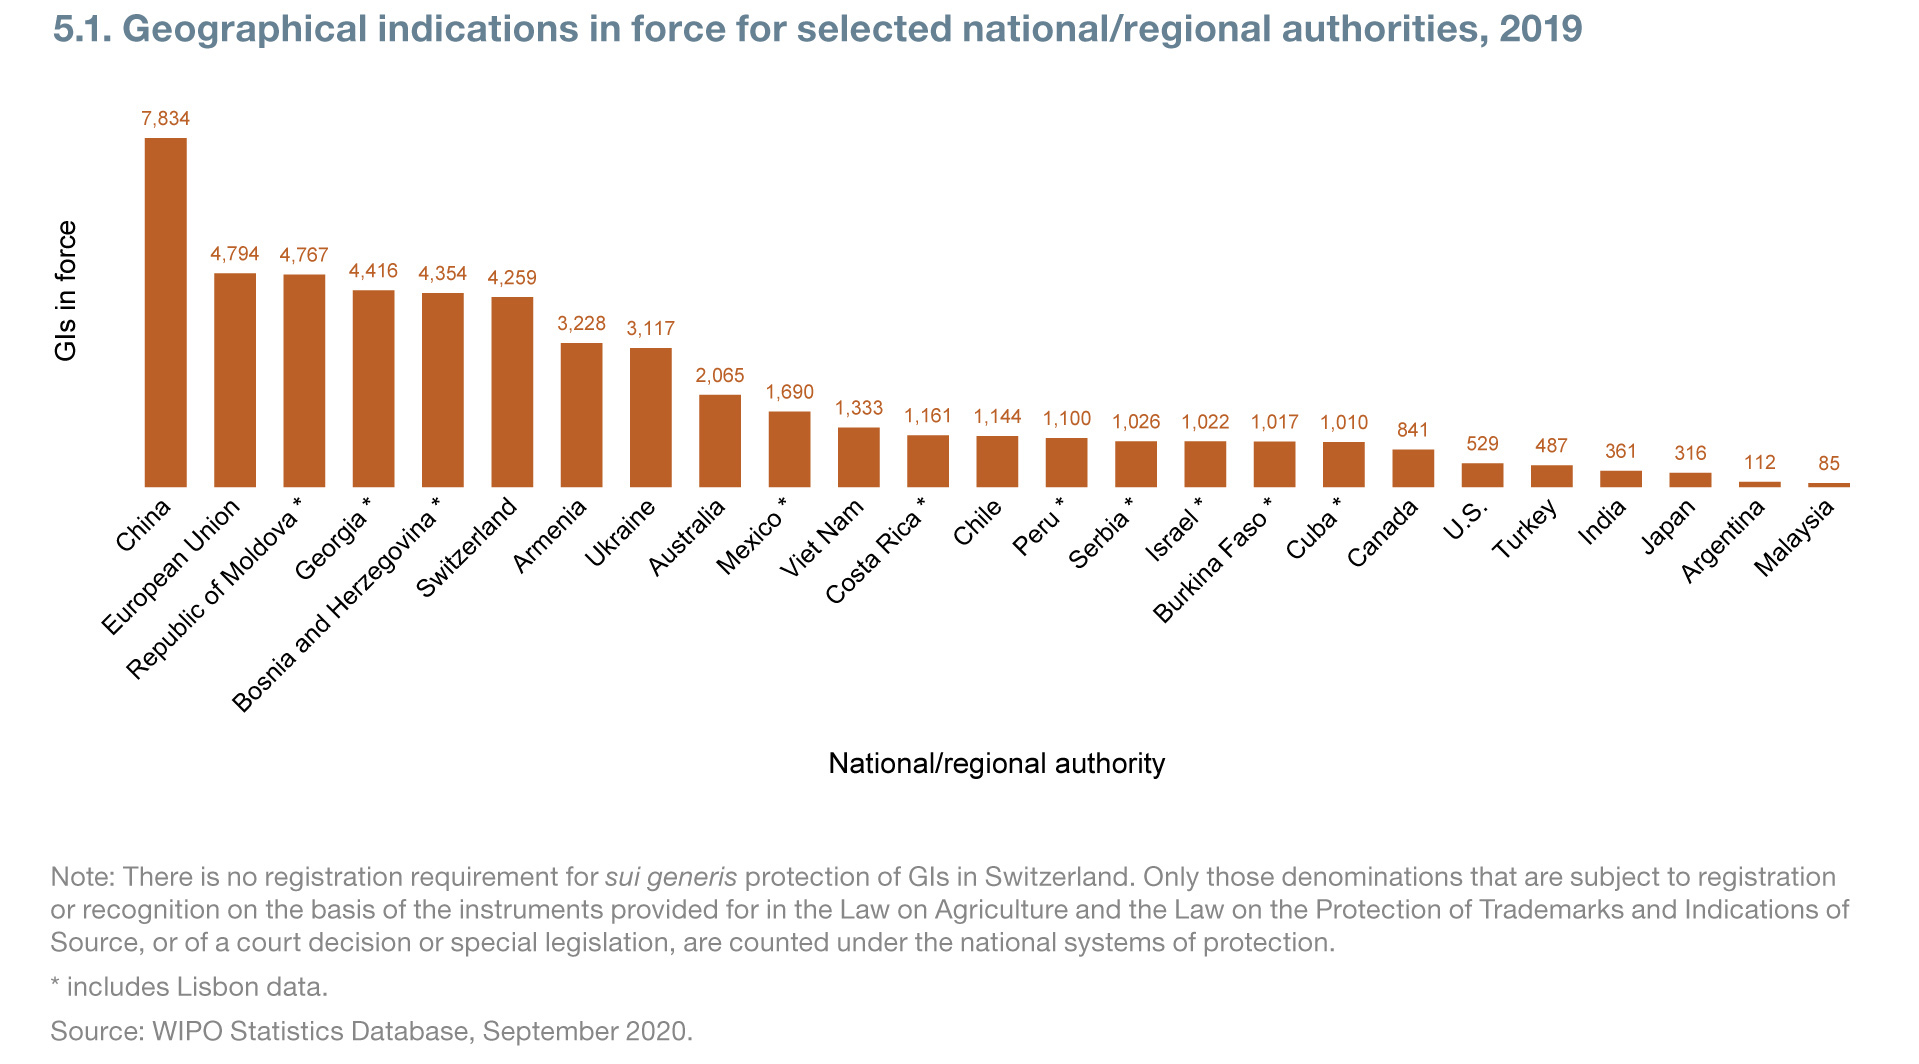 Geographical indications in force for selected national/regional authorities, 2019